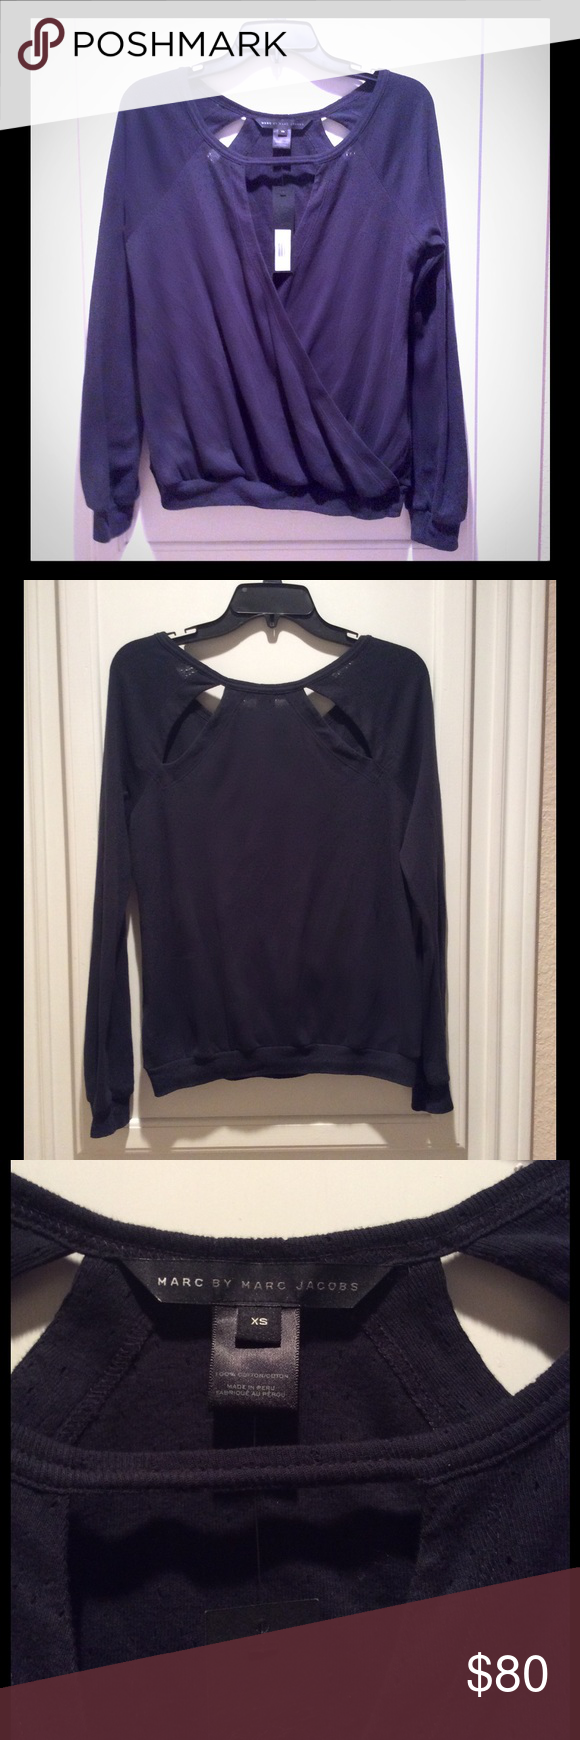 ❗️SALE❗️Marc by Marc Jacobs Normandy Blue Sweater NWT | D ...